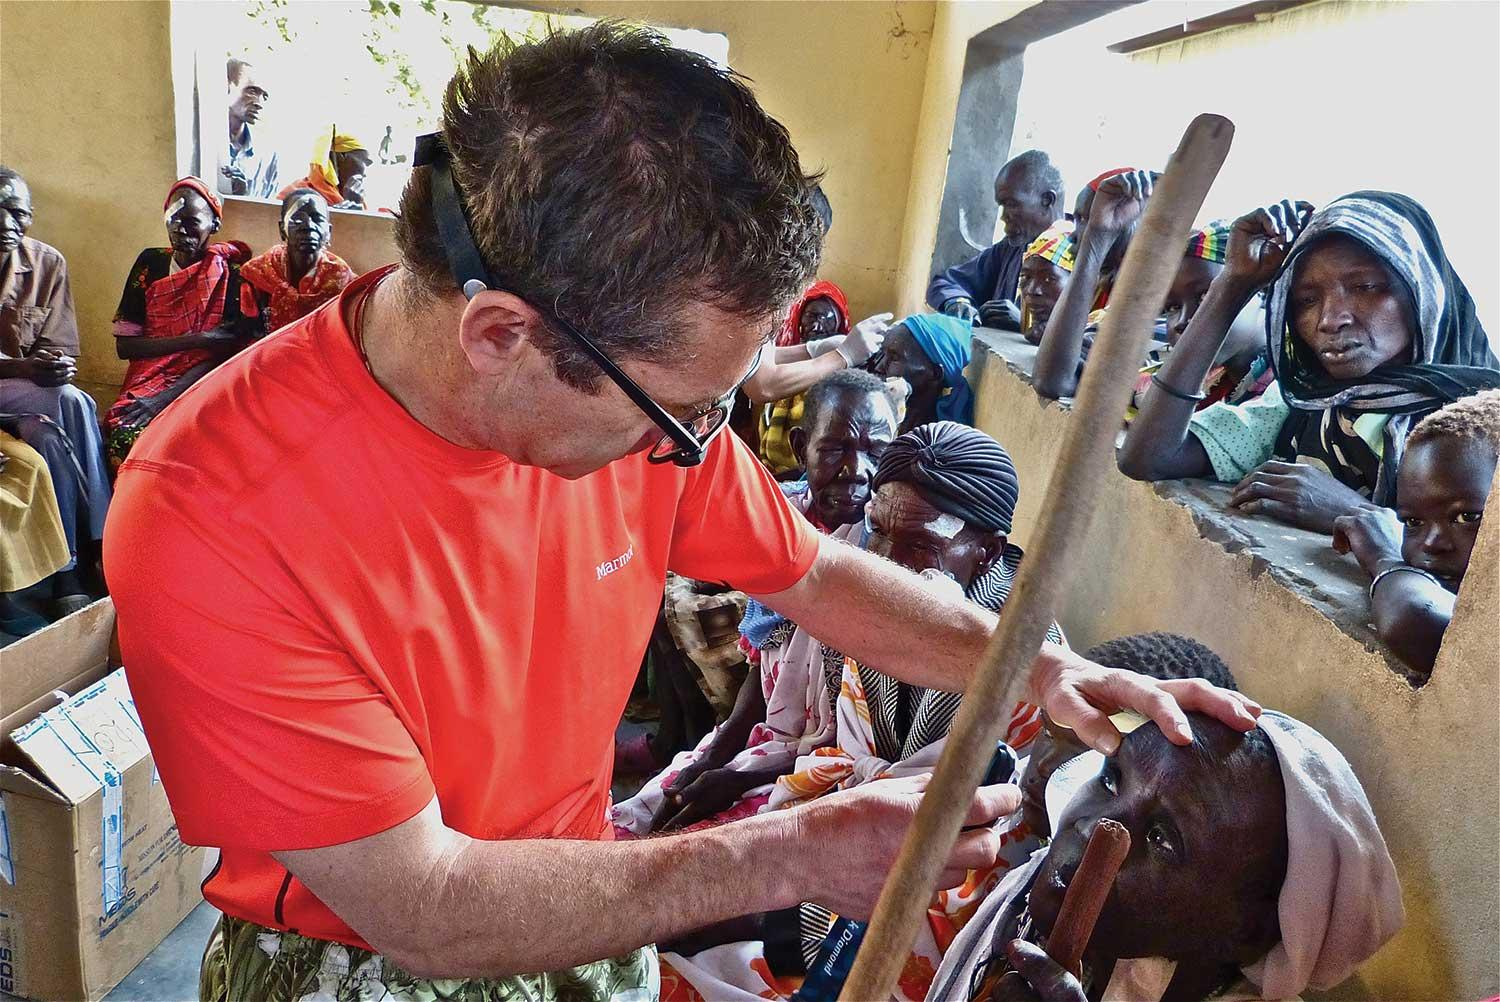 Dr. Geoff Tabin examines a woman after surgery in the clinic filled with patients and their families